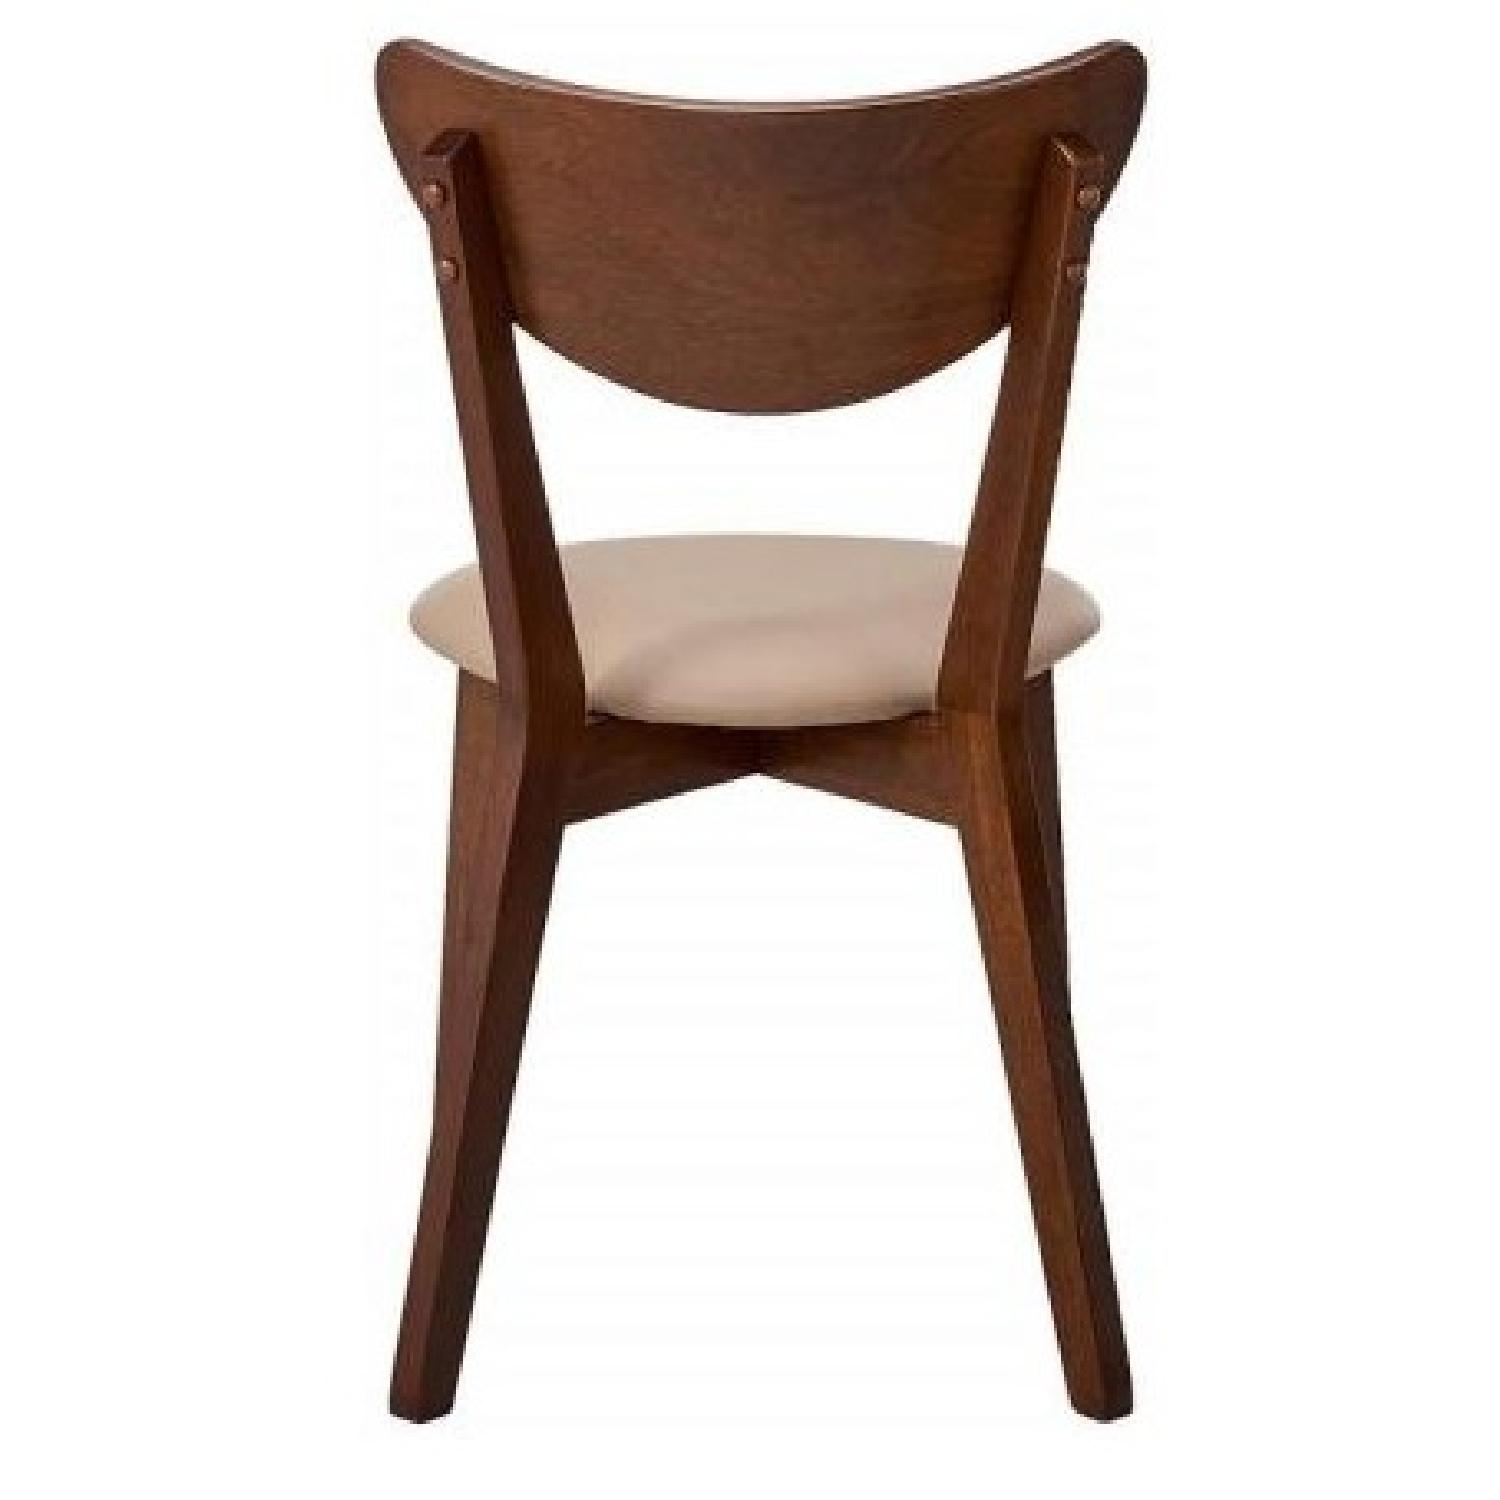 Brilliant Mid Century Retro Style Dining Chair W Curved Back In Ncnpc Chair Design For Home Ncnpcorg